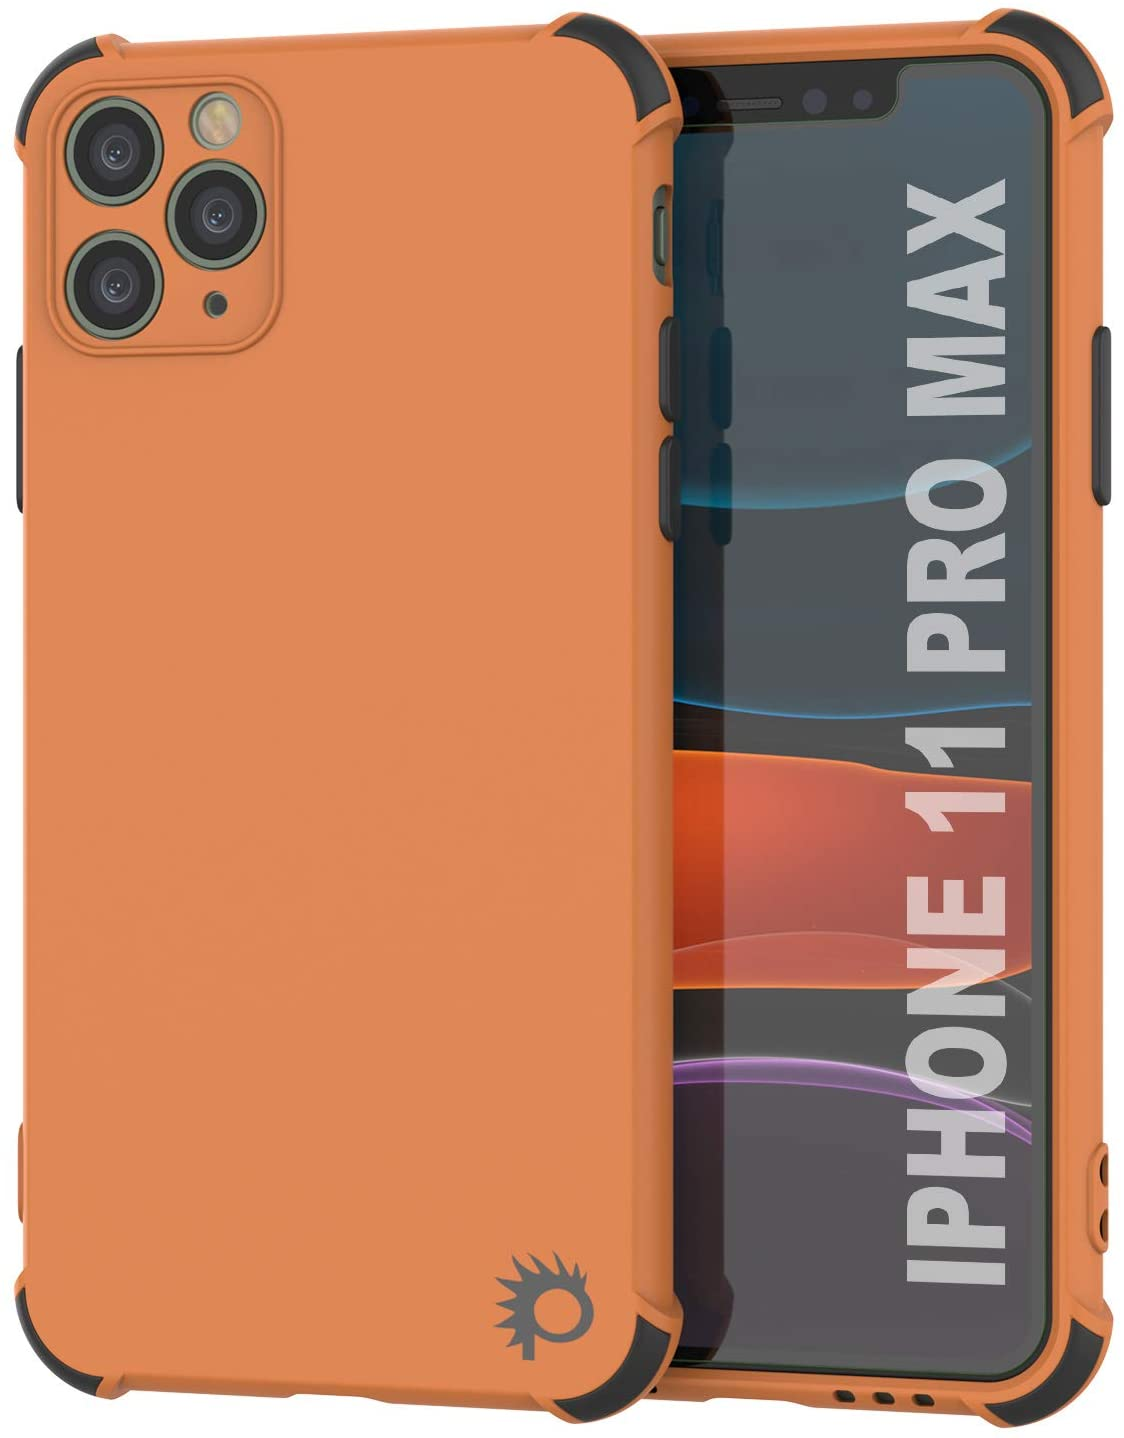 Punkcase Protective & Lightweight TPU Case [Sunshine Series] for iPhone 11 Pro Max [Orange]